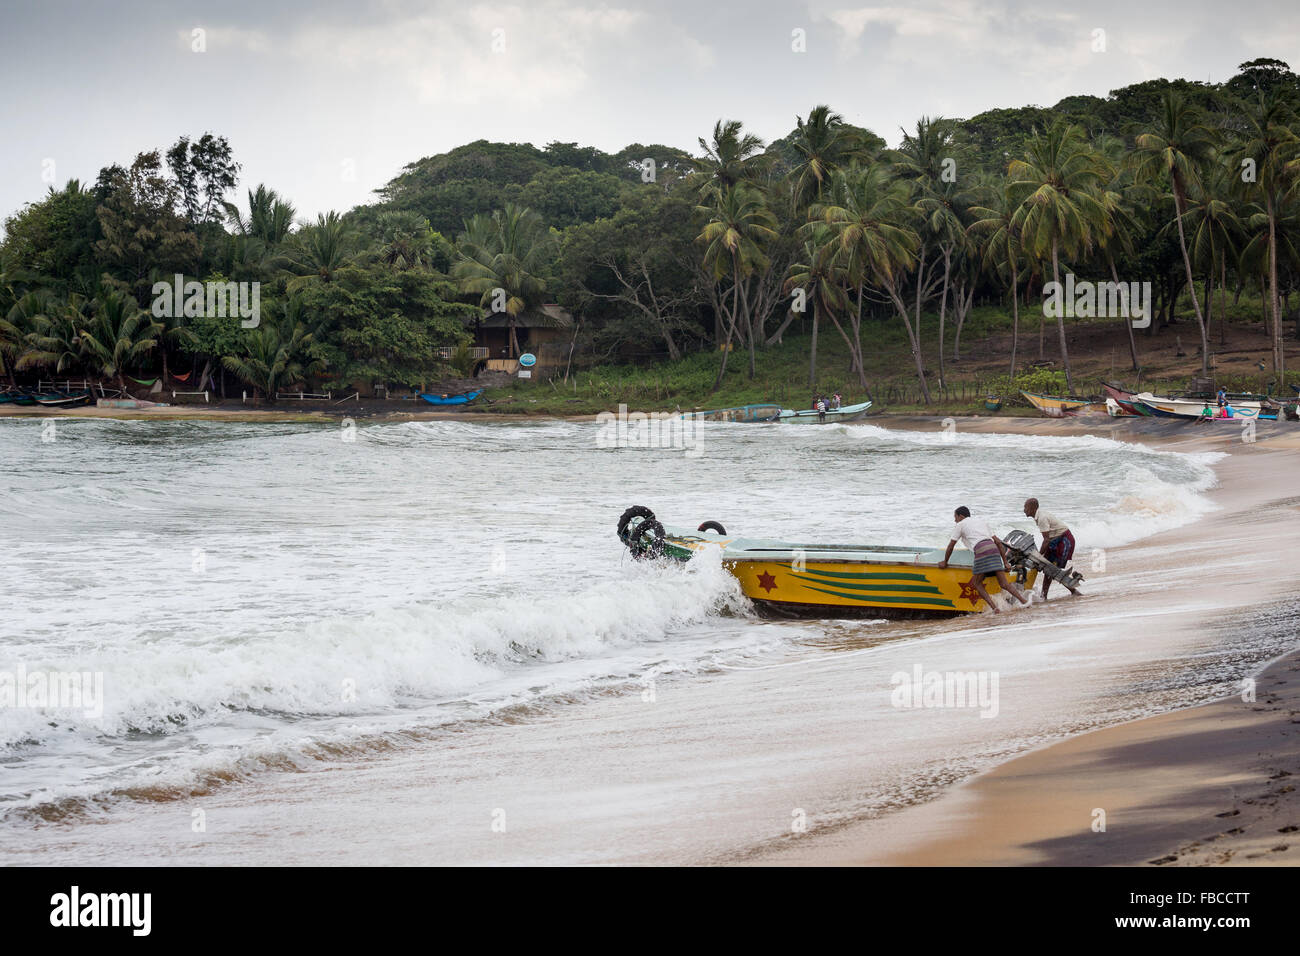 Fishermen on a beach, Arugam Bay, Sri Lanka, Asia Stock Photo